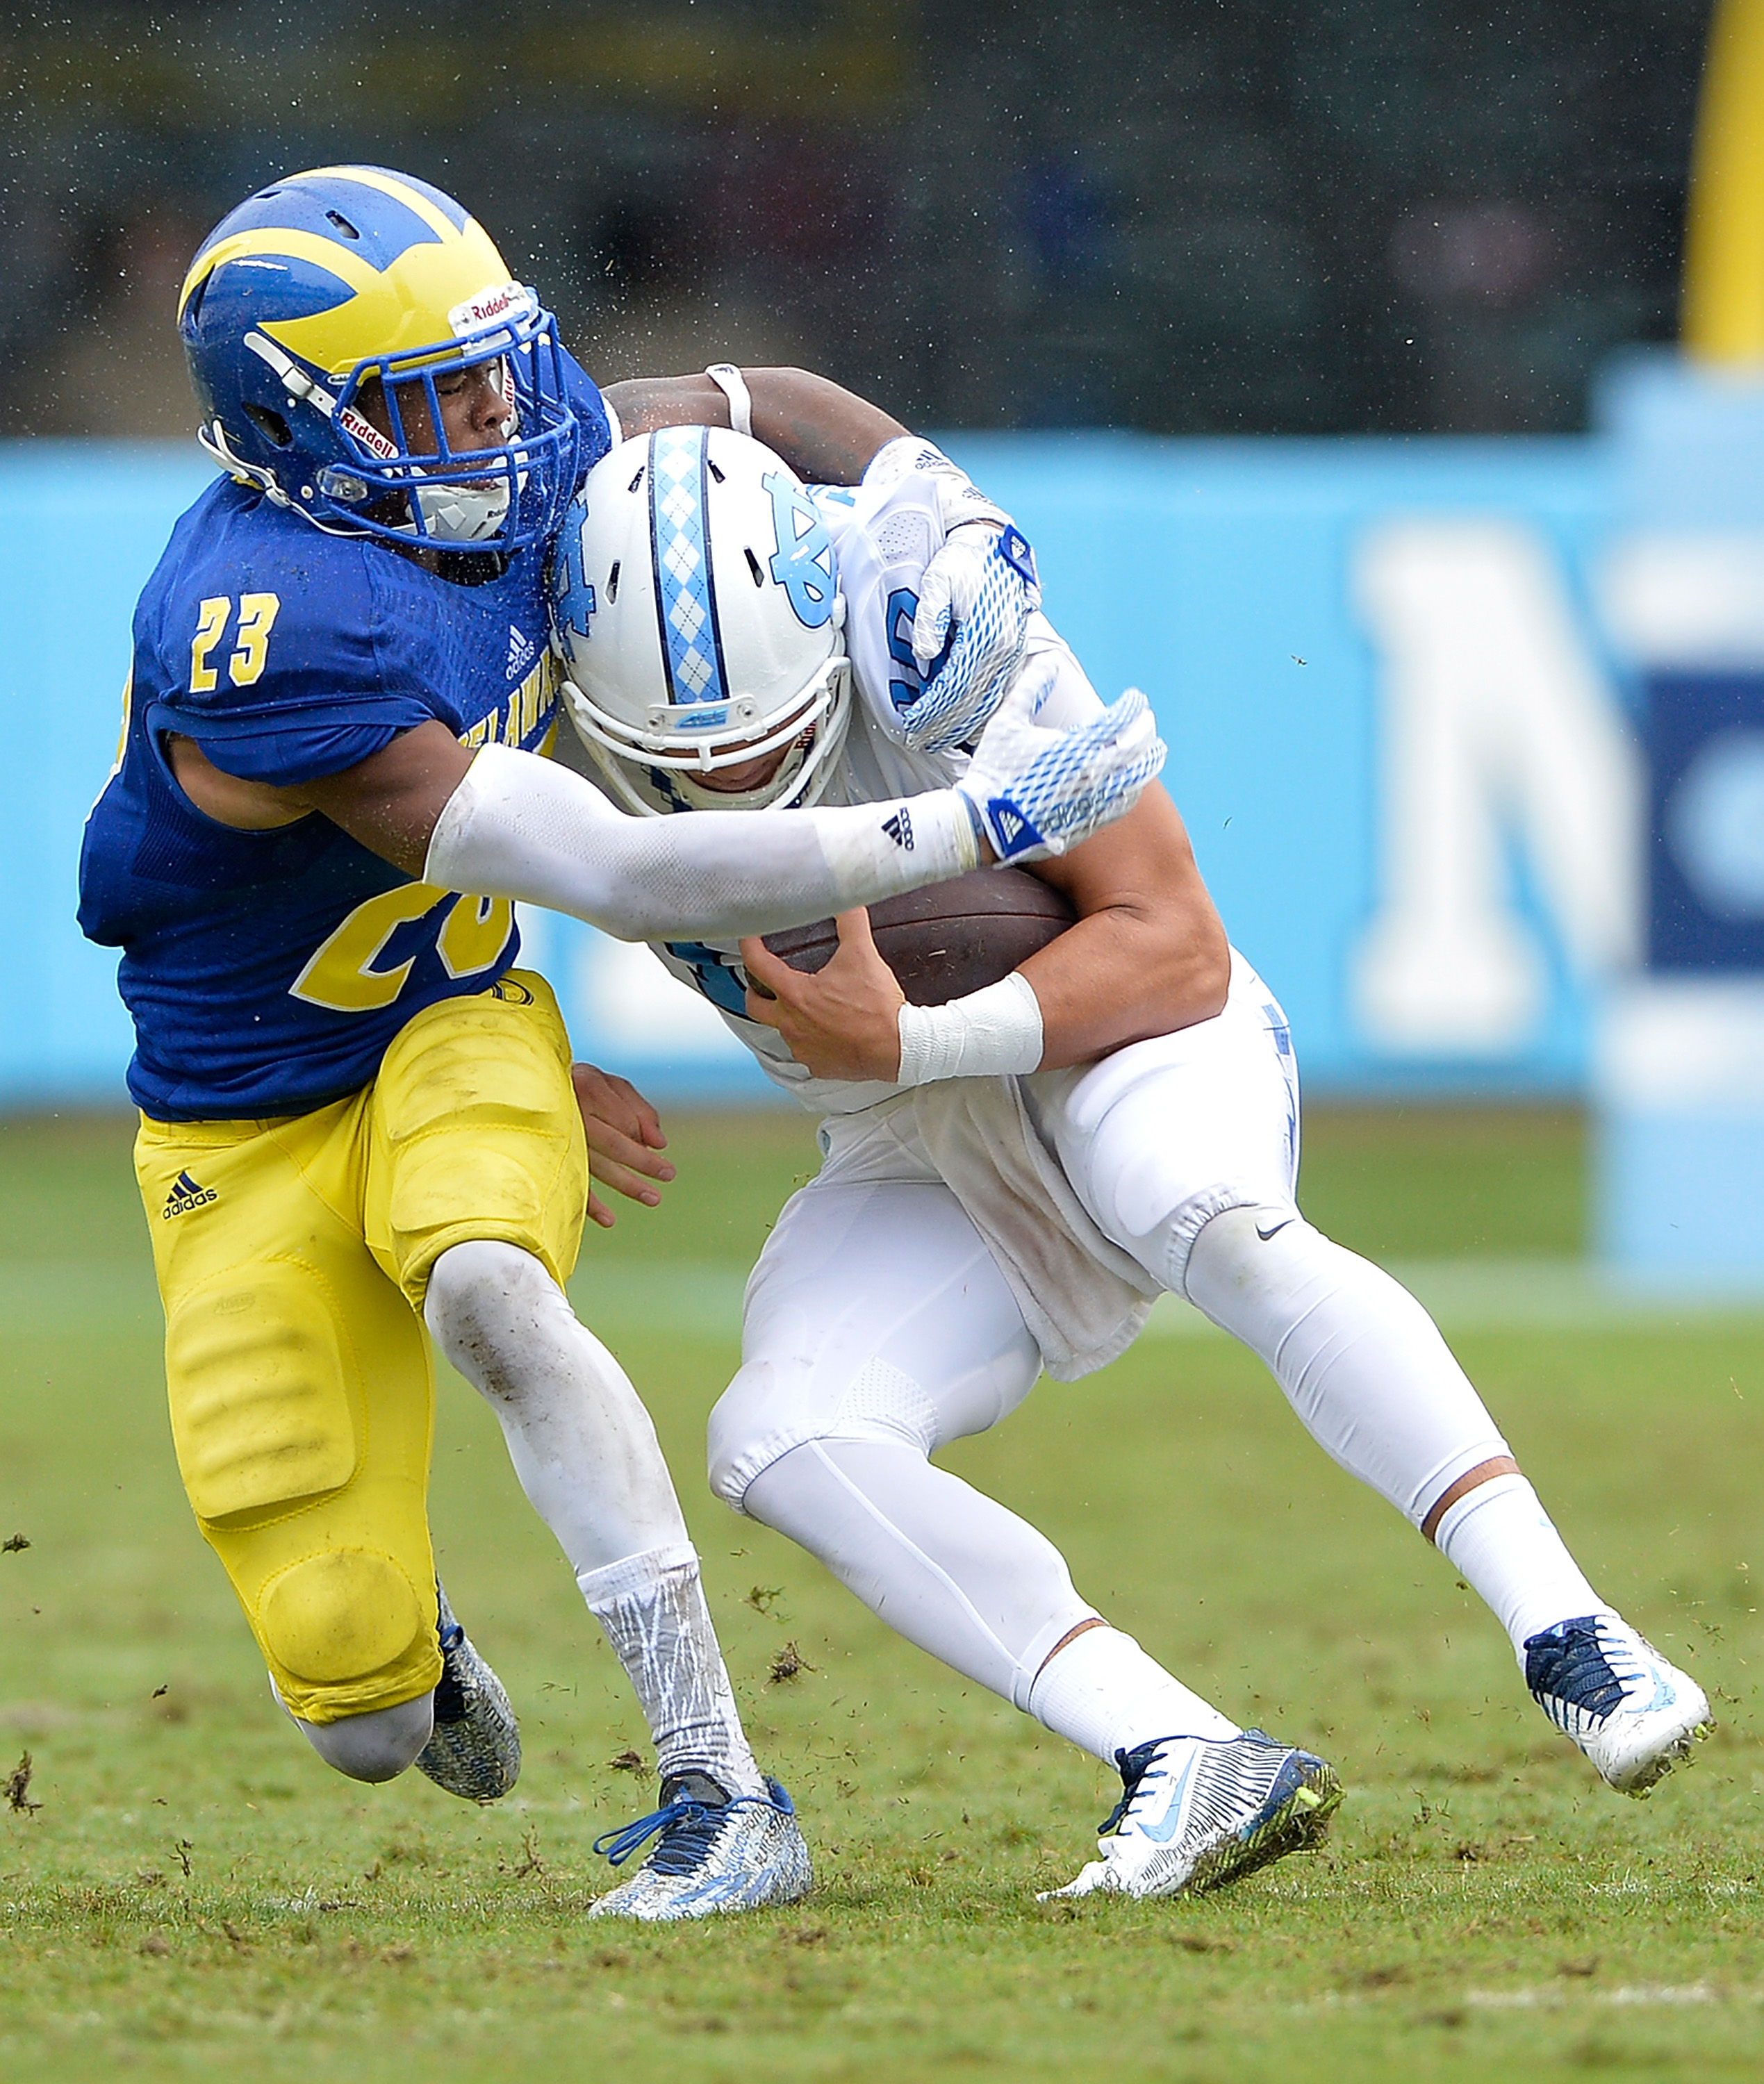 huge selection of 8472d 24604 2019 NFL Draft: Six safeties the Carolina Panthers could ...